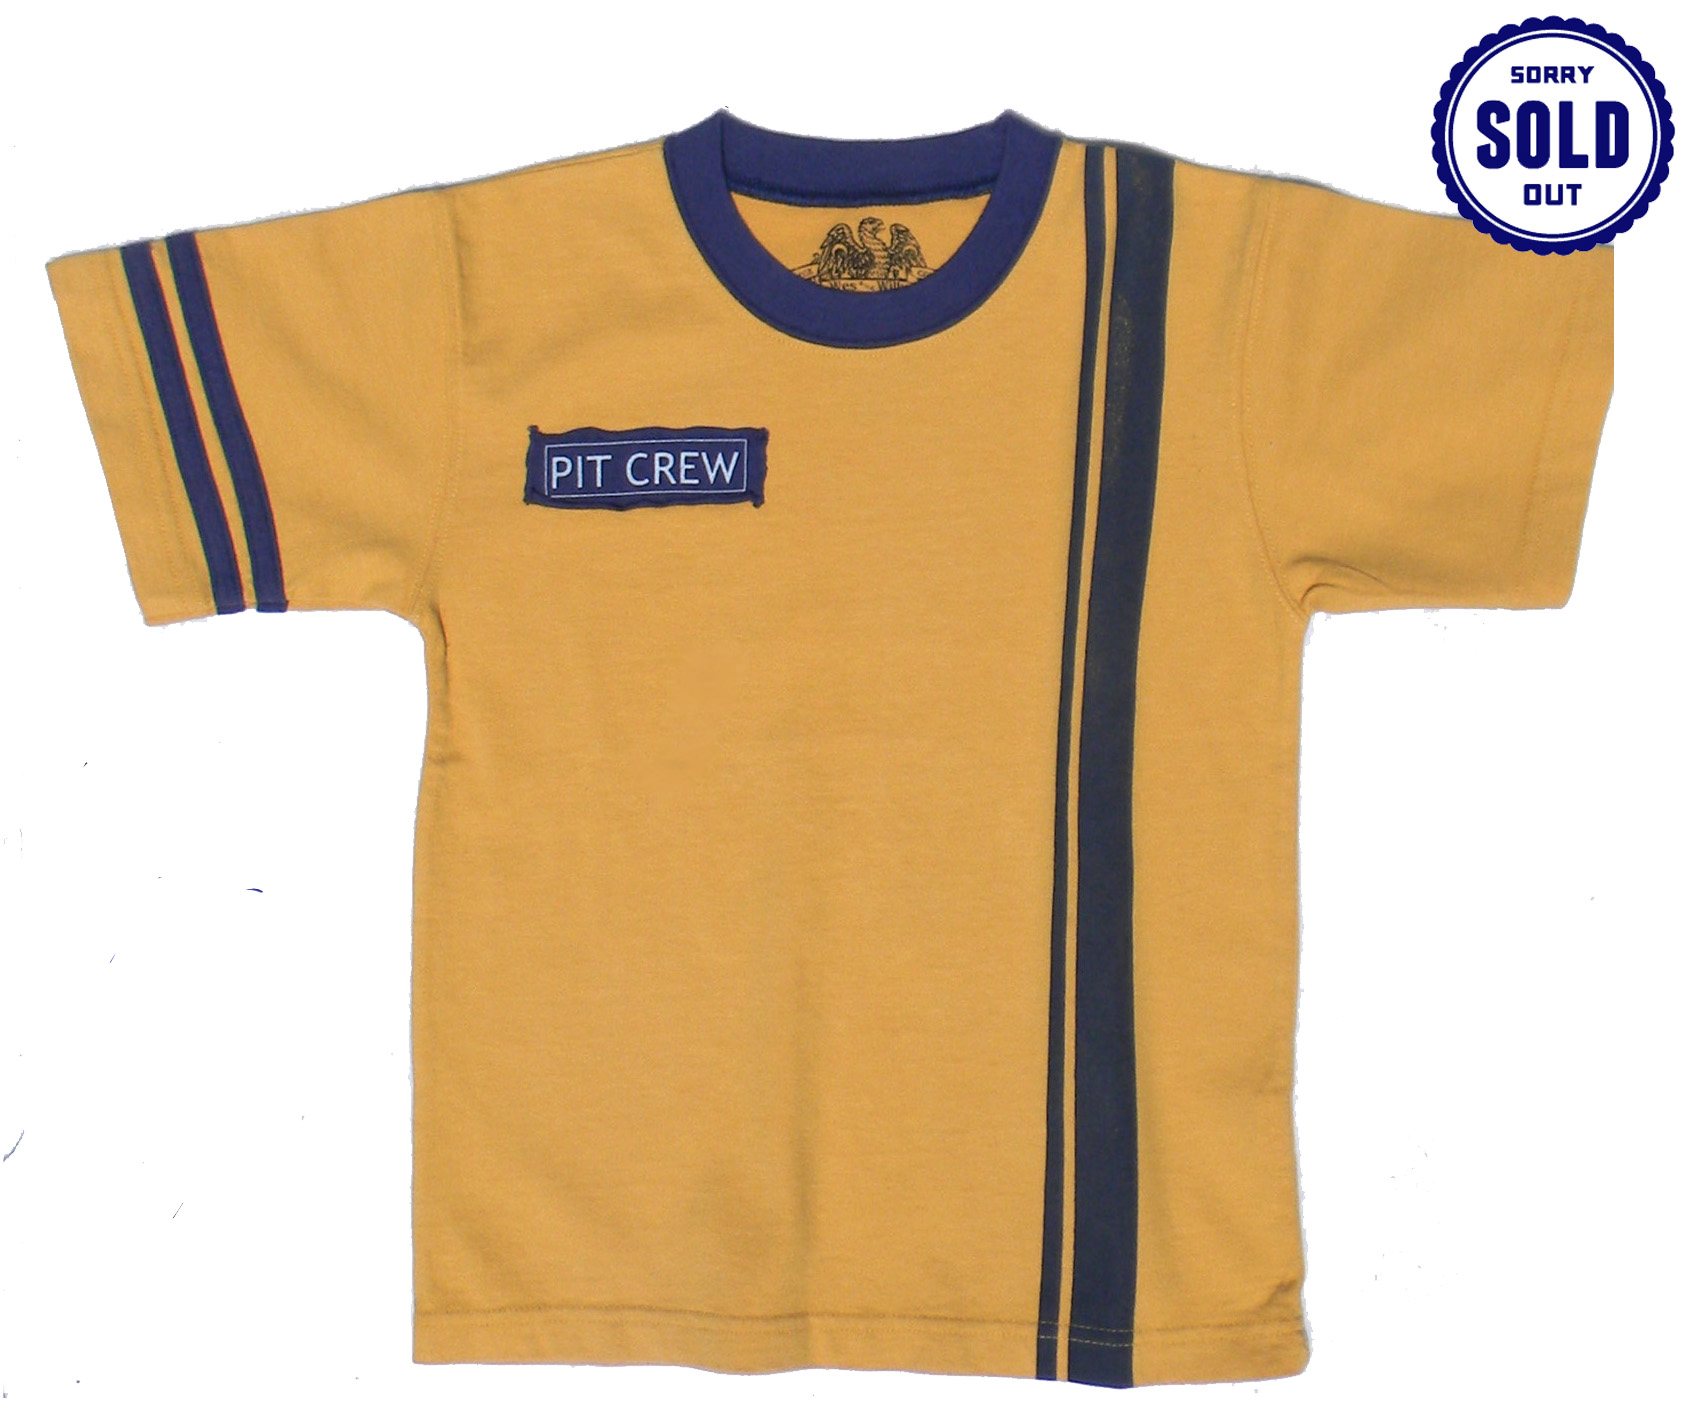 Boy's Pit Crew Shirt by Wes and Willy (Size: XL(18))